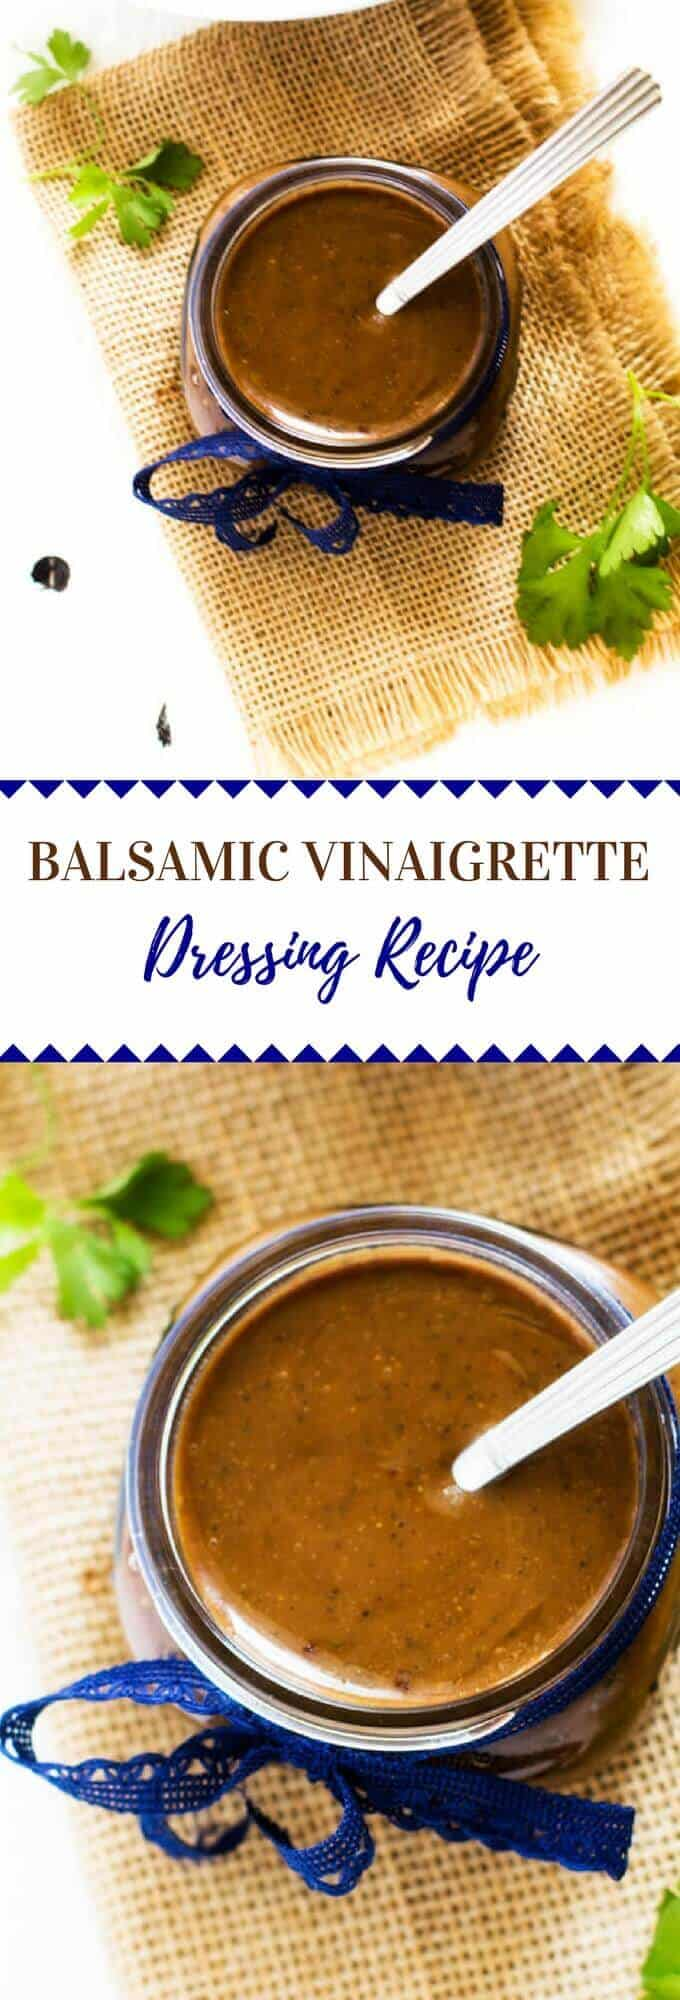 This Balsamic Vinaigrette Dressing Recipe is the perfect way to make your salads shine. Packed with flavor, bottled dressings just can't compete.